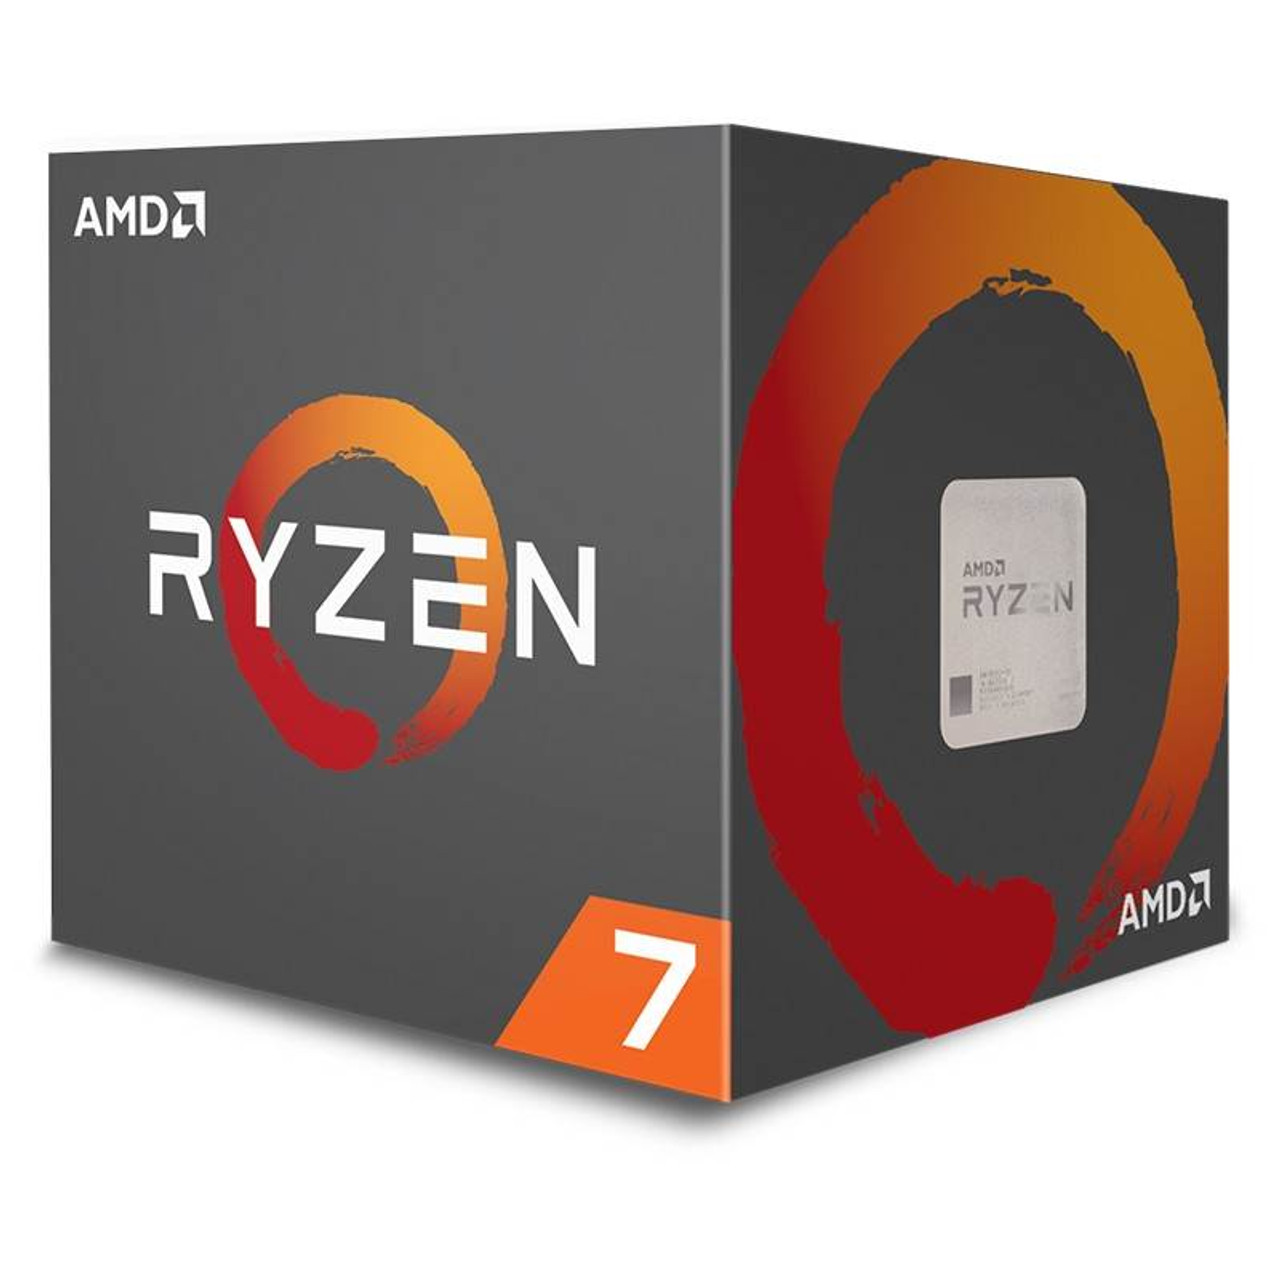 Product image for AMD Ryzen 7 2700X with Wraith Prism | CX Computer Superstore